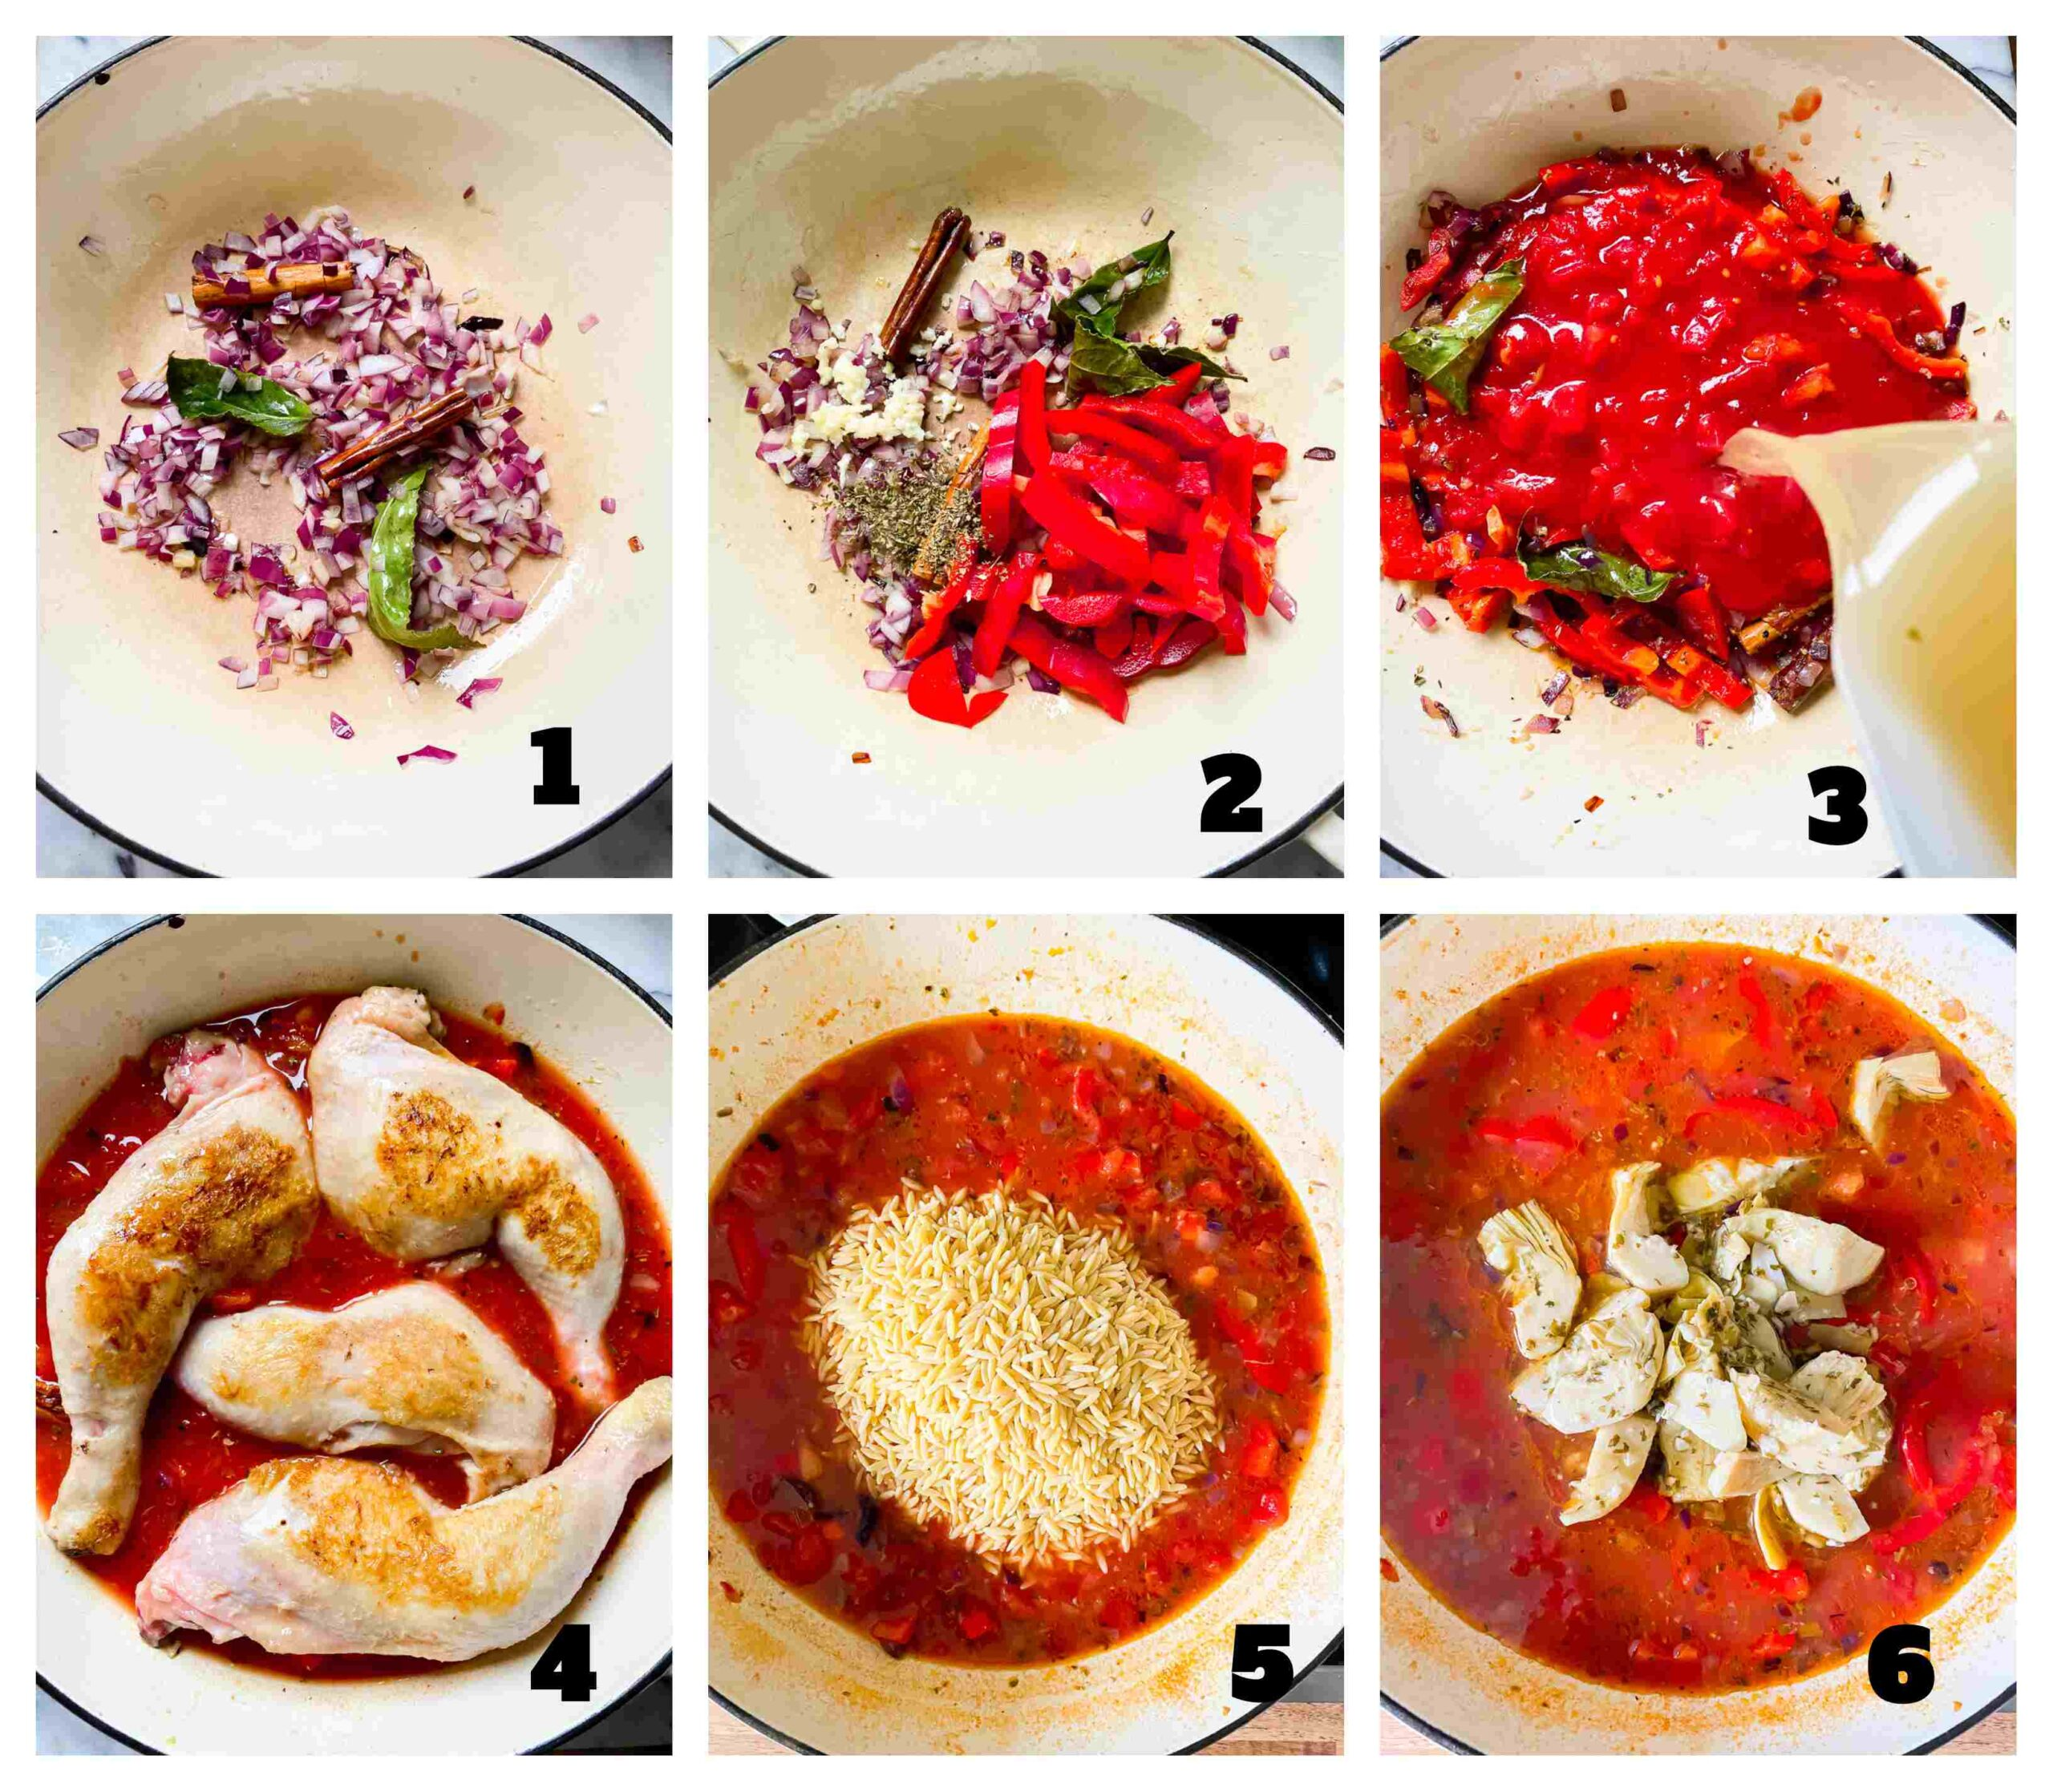 chicken and orzo recipe process images